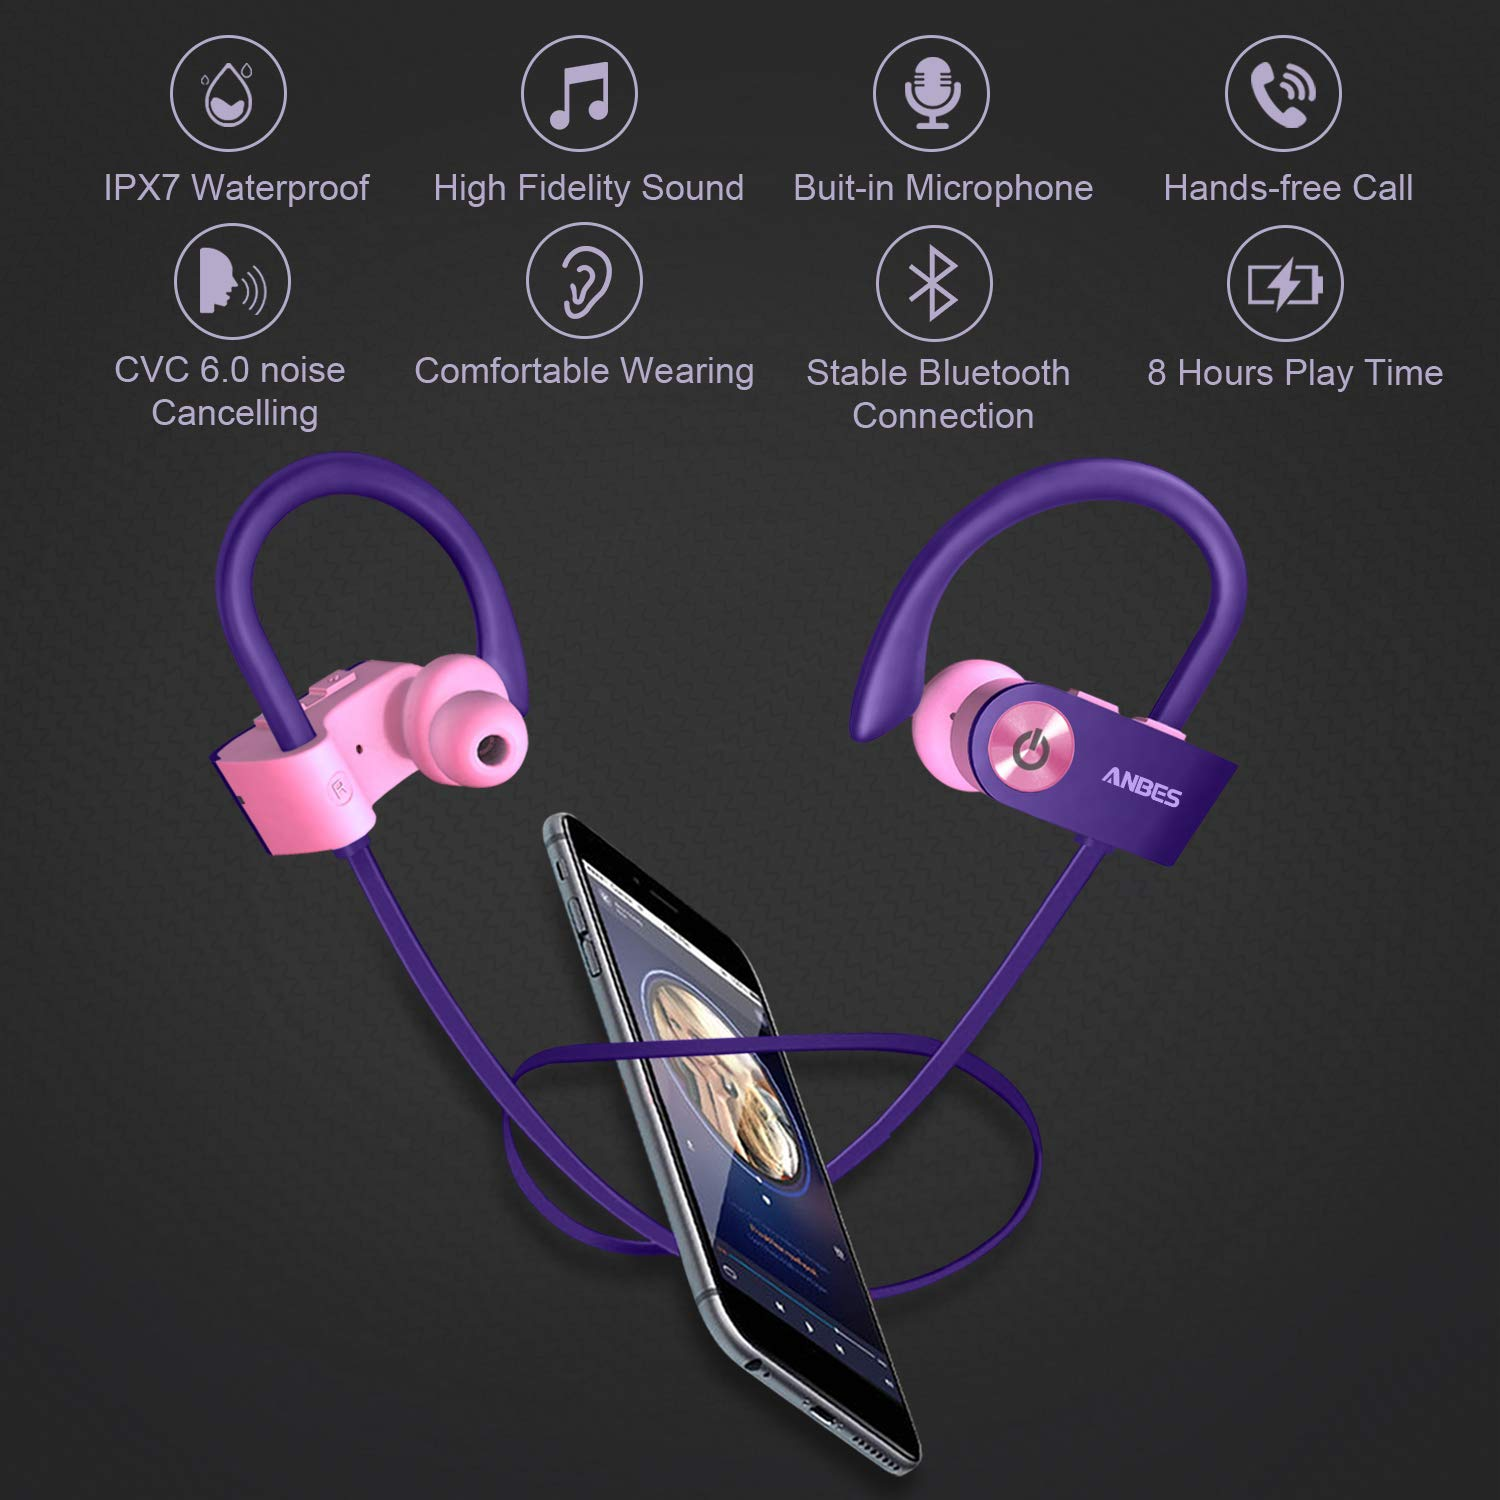 Bluetooth Headphones 8 Hours Battery Noise Canceling Headsets Anbes Wireless Earbuds IPX7 Waterproof Sports Earphones with Ear Hooks /& Mic HD Stereo in-Ear Headphones Gym Running Workout